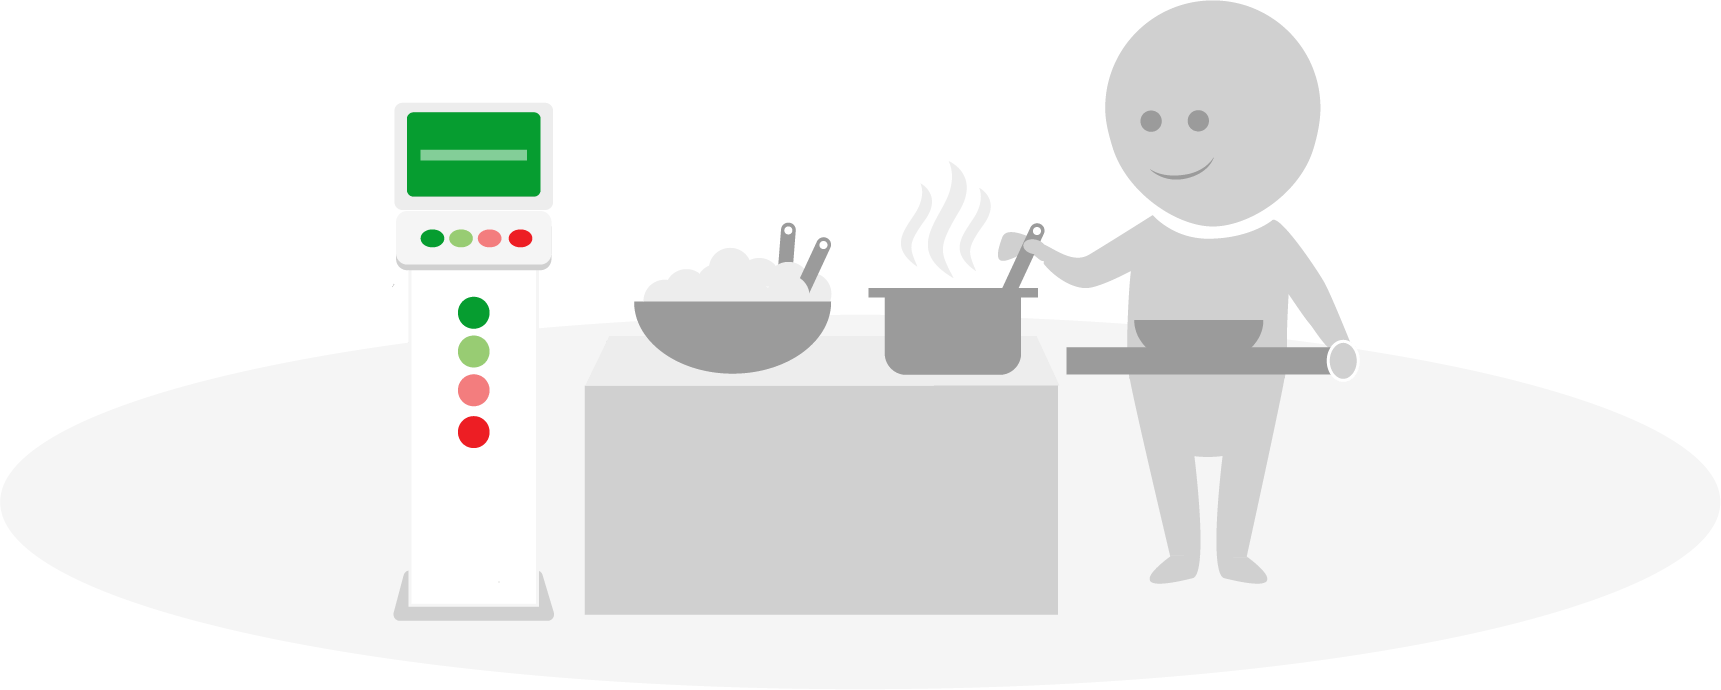 clipart free download Happyornot in catering are. Cafeteria clipart vendor.